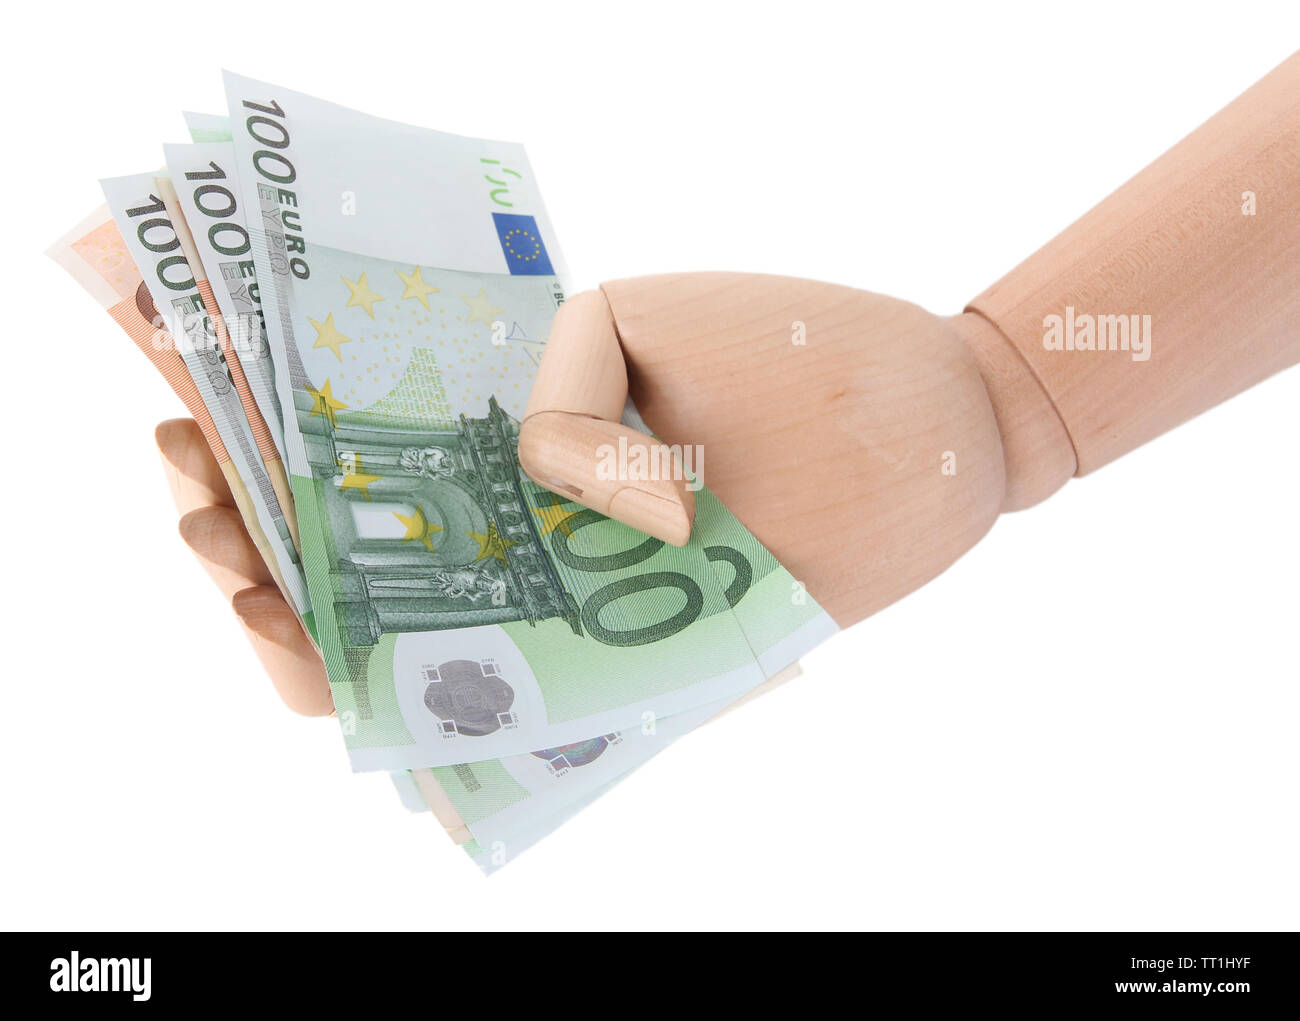 Money in wooden hand, isolated on white - Stock Image